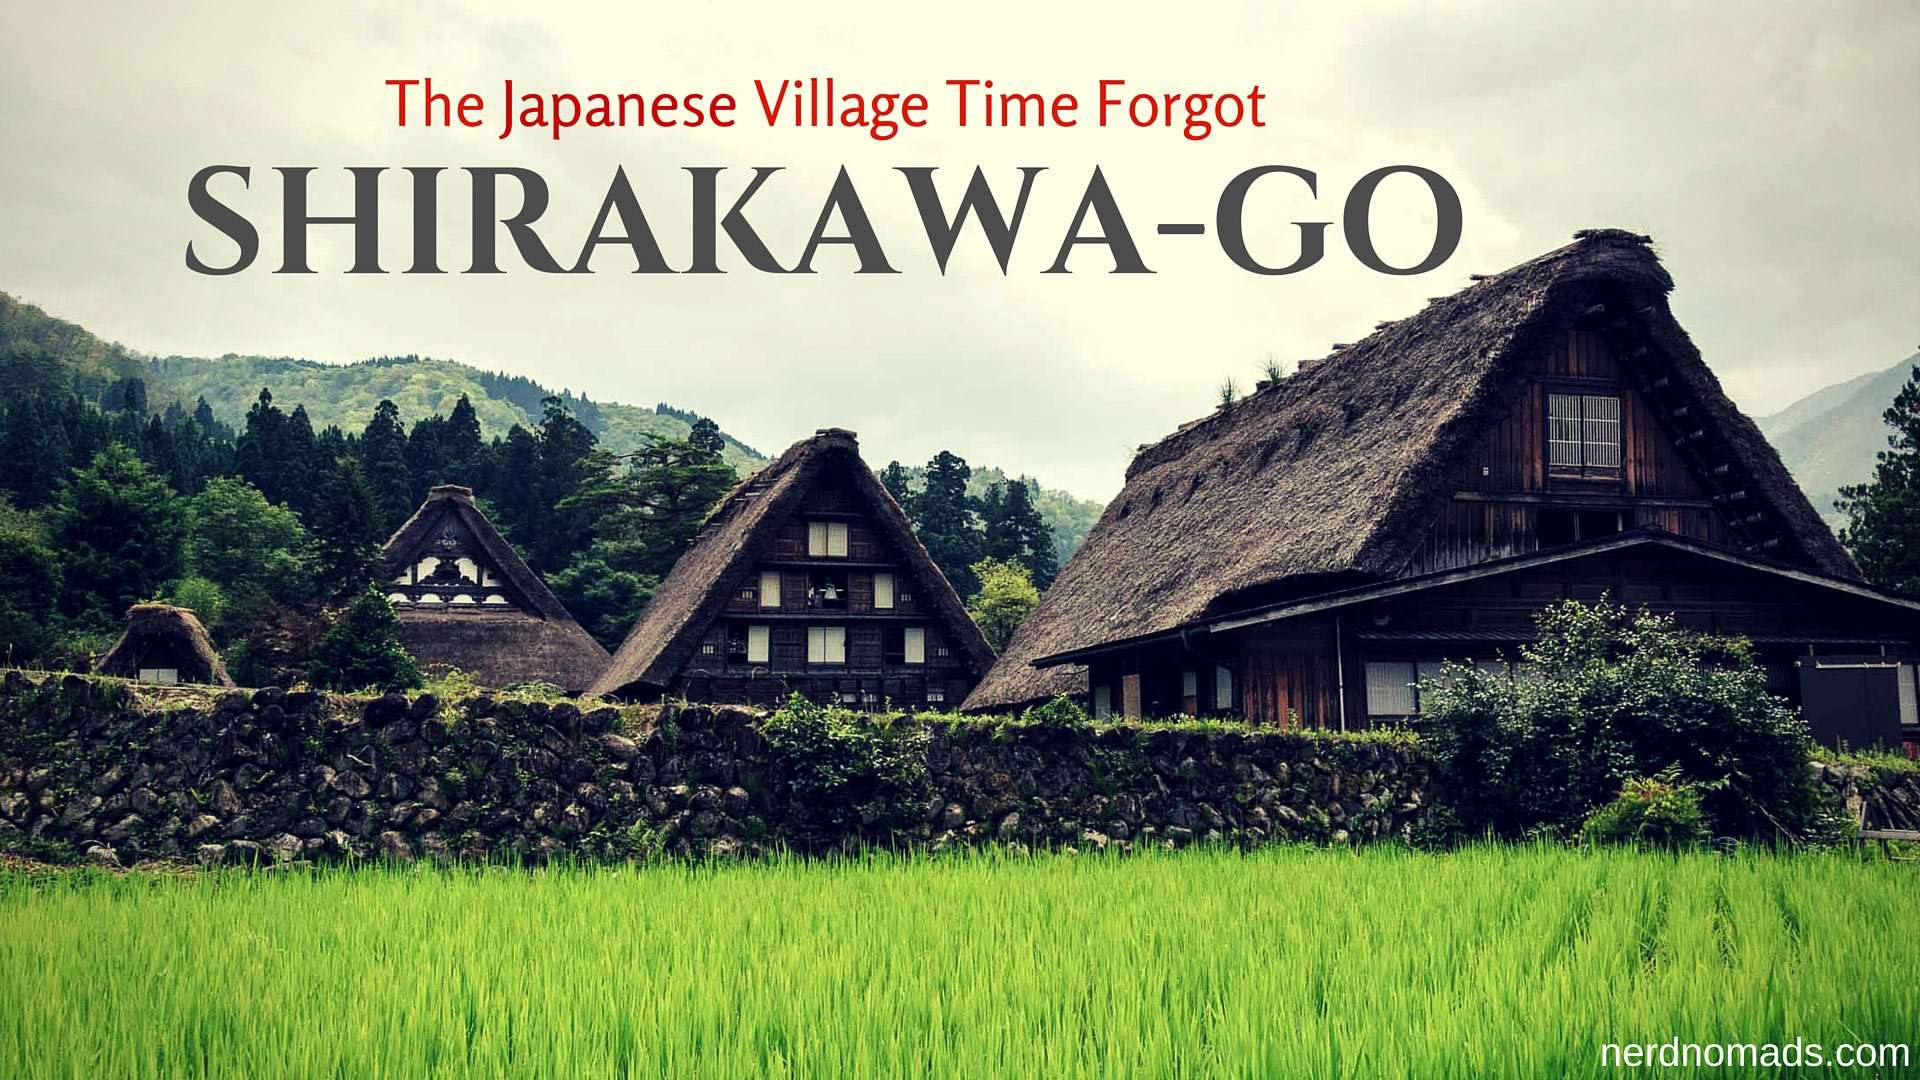 The Japanese Village Time Forgot – Shirakawa-go